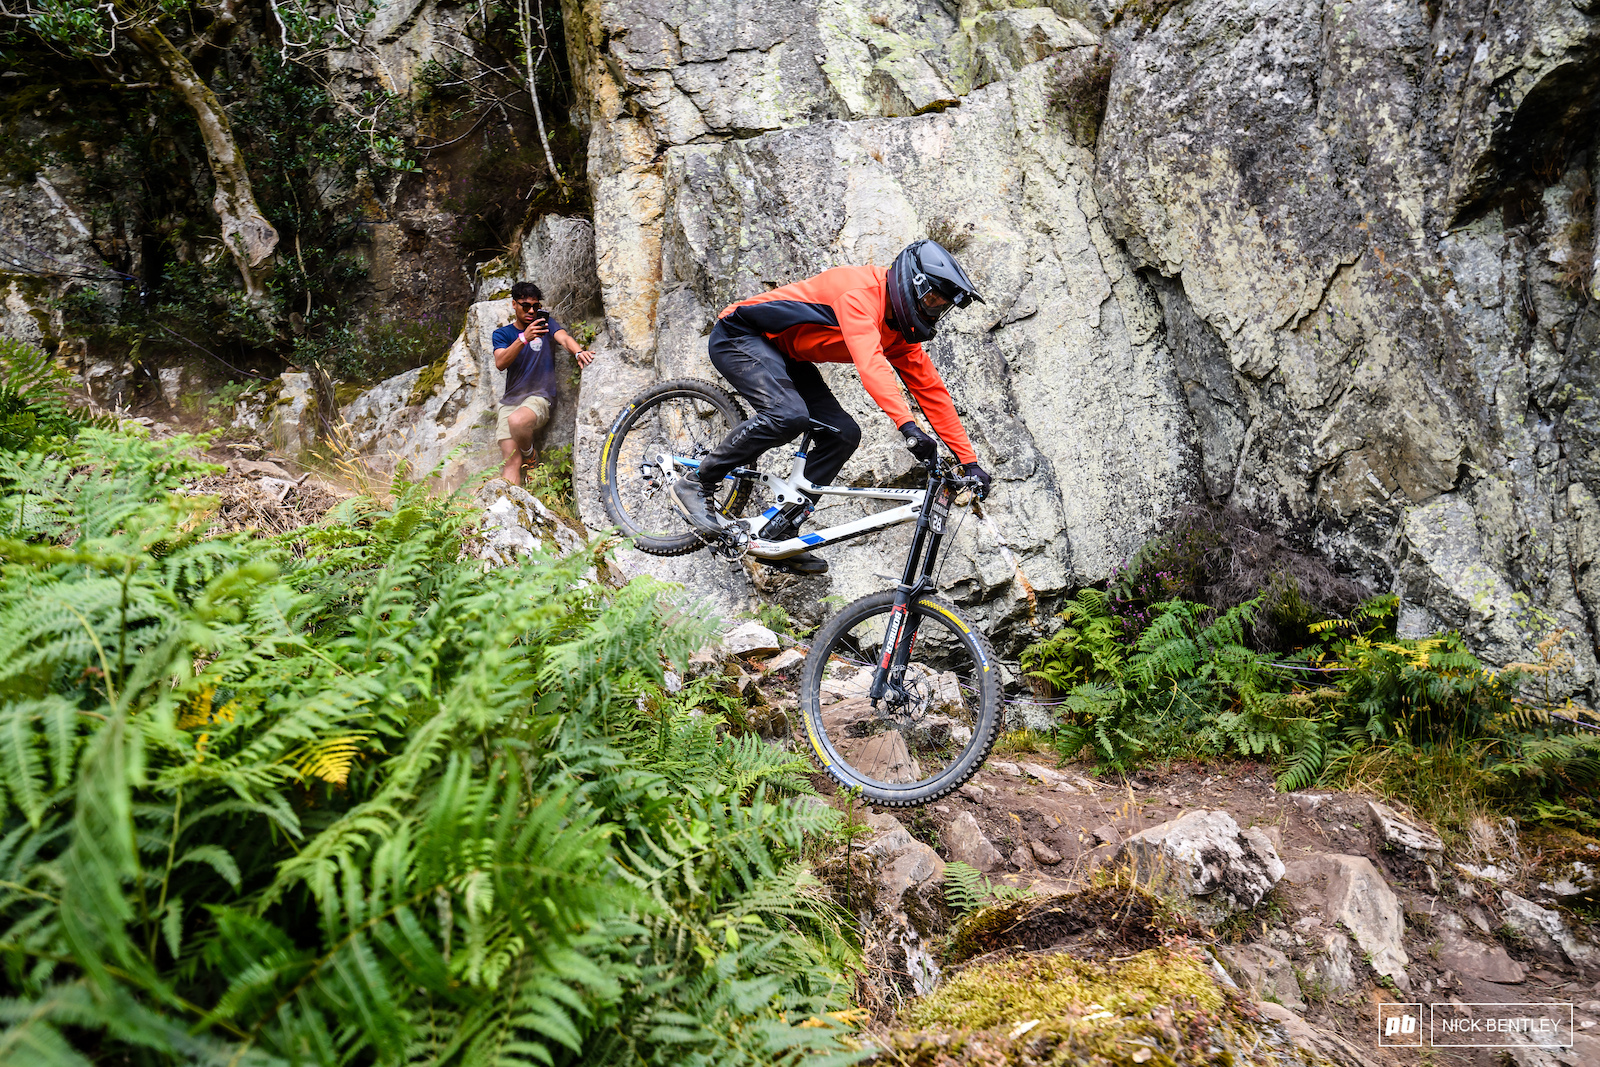 Vincent Turpin making his way through the technical rock section above the road gap.